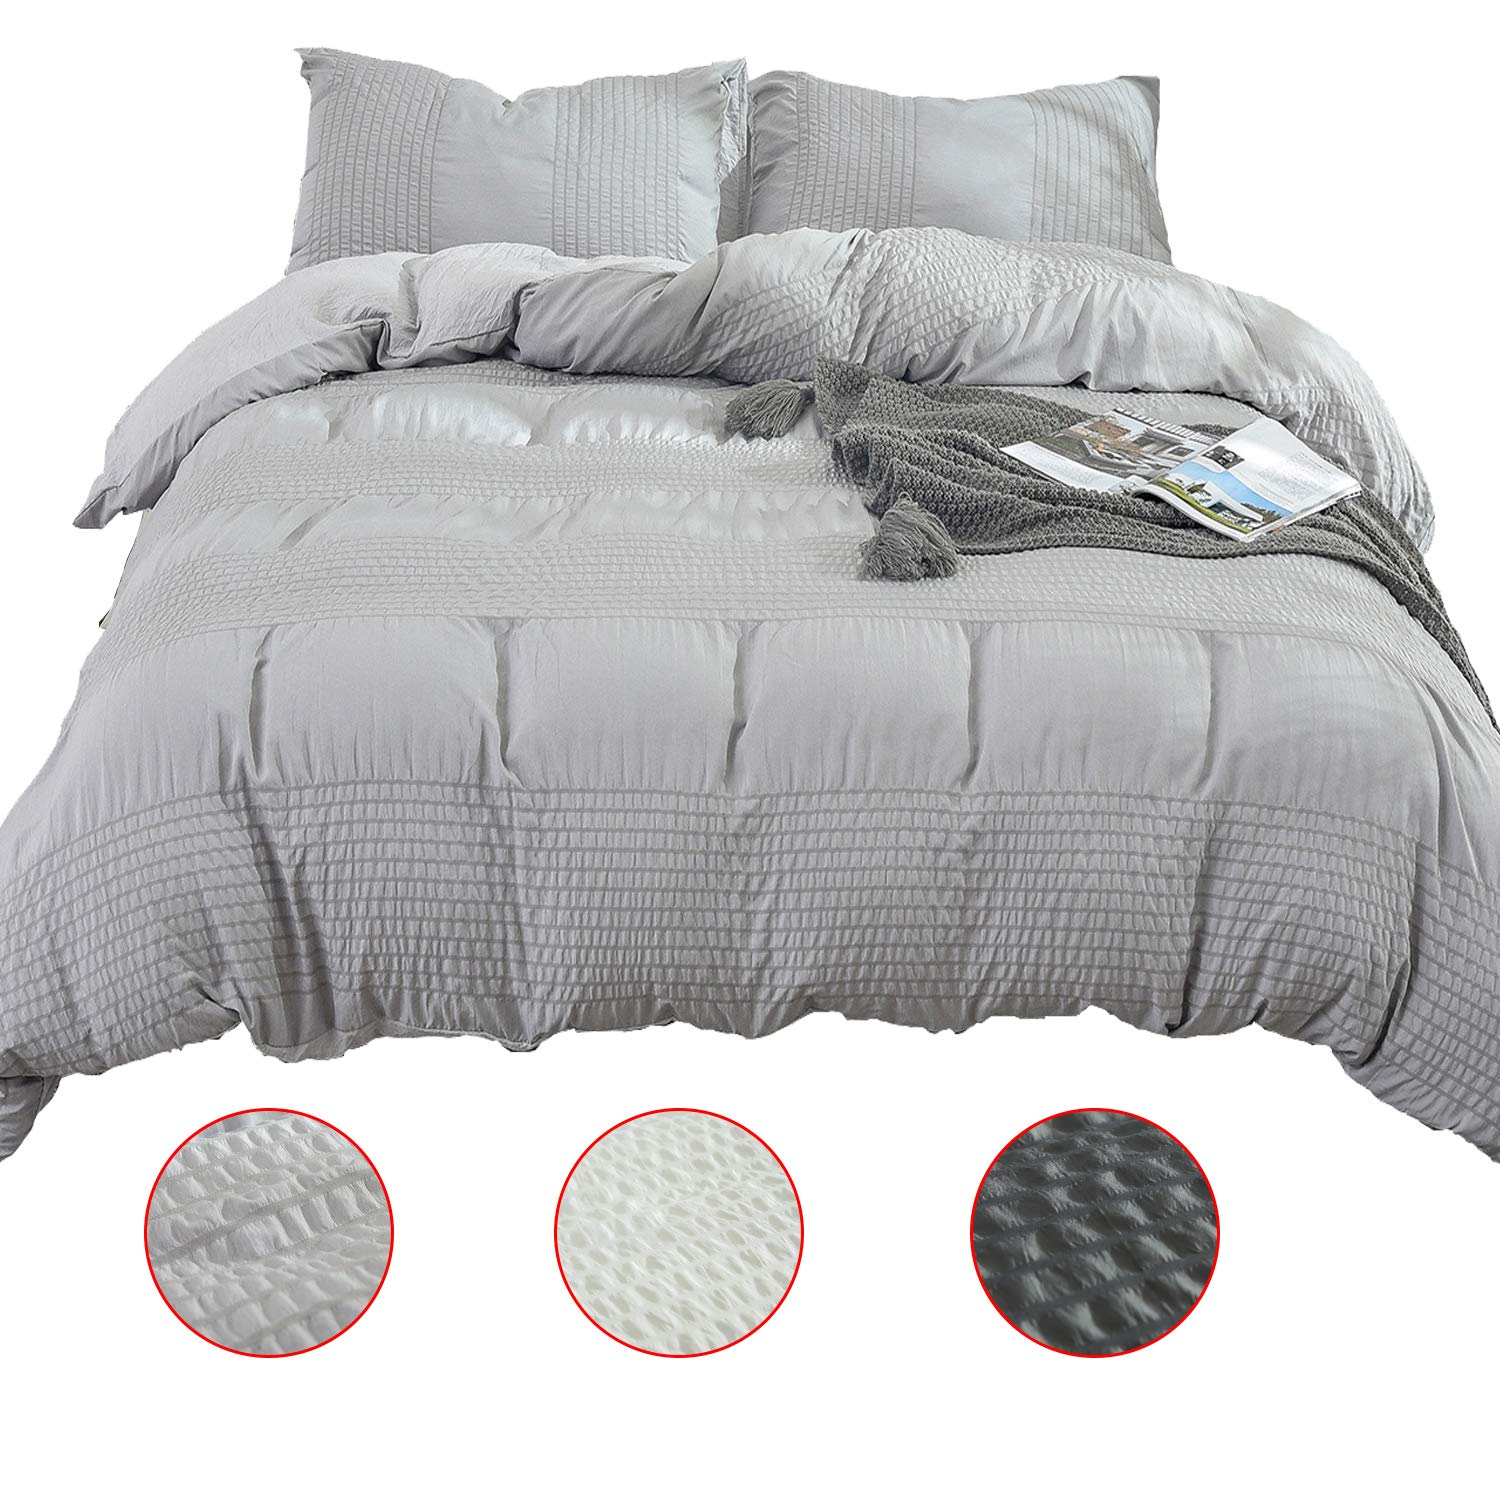 XingShow Solid King Duvet Cover Set Gray Soft 3 Pieces(1 Textured Duvet Cover and 1 Striped Pillowcase) Seersucker Comforter Cover Set with Zipper Closure